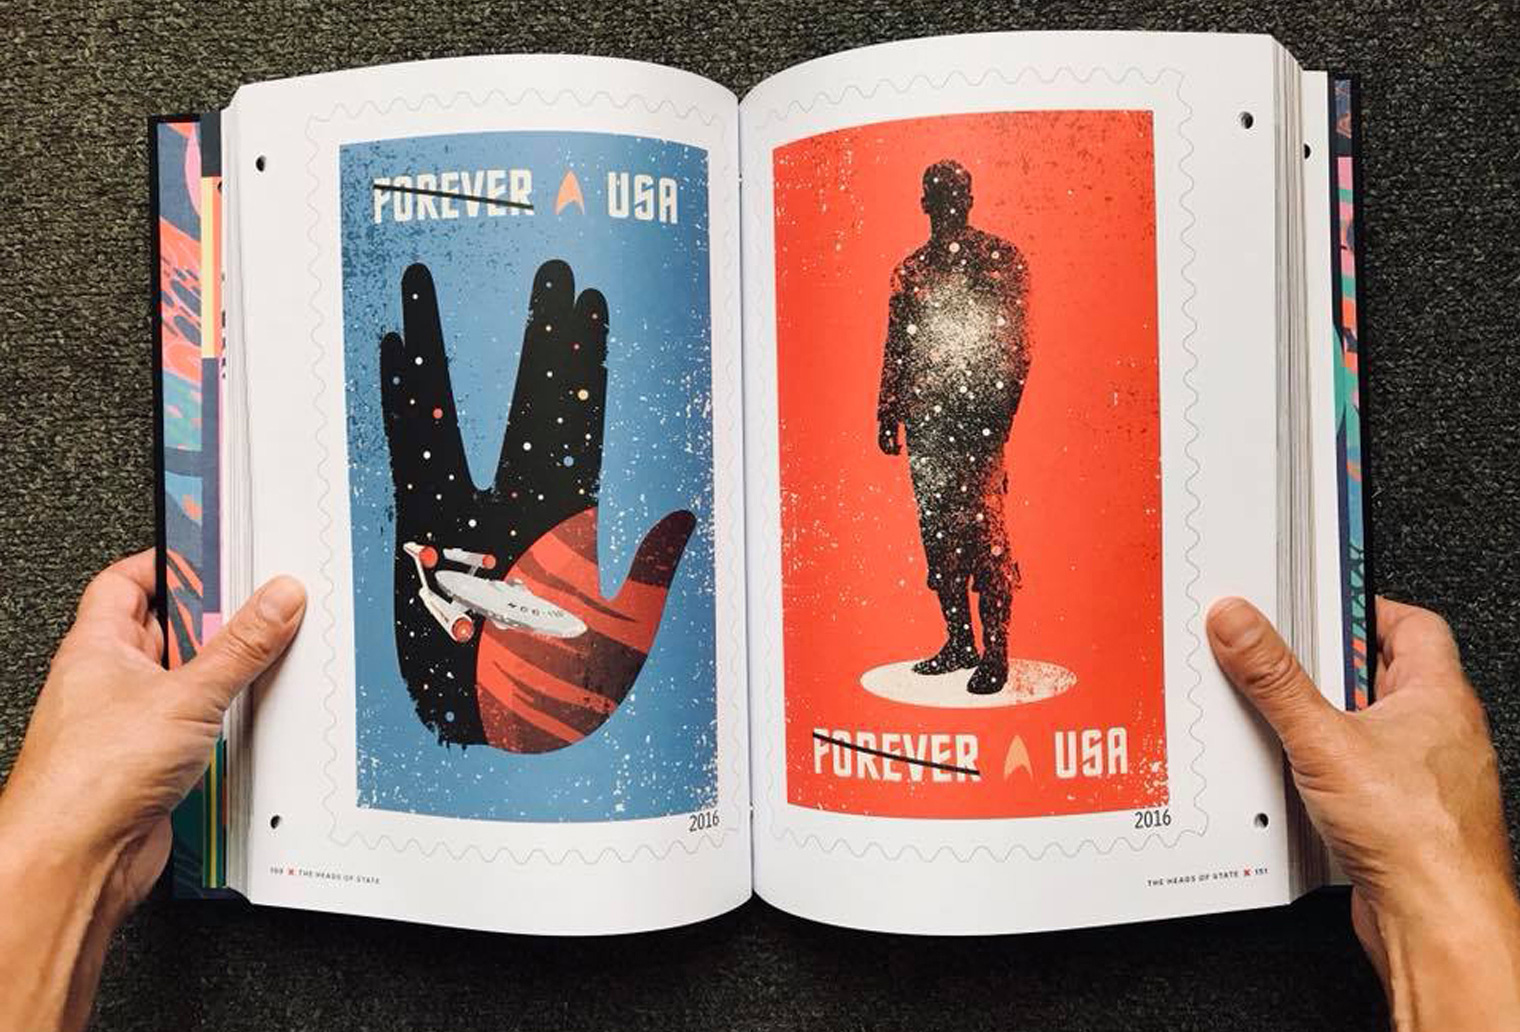 Star Trek Stamp in American Illustrators 36